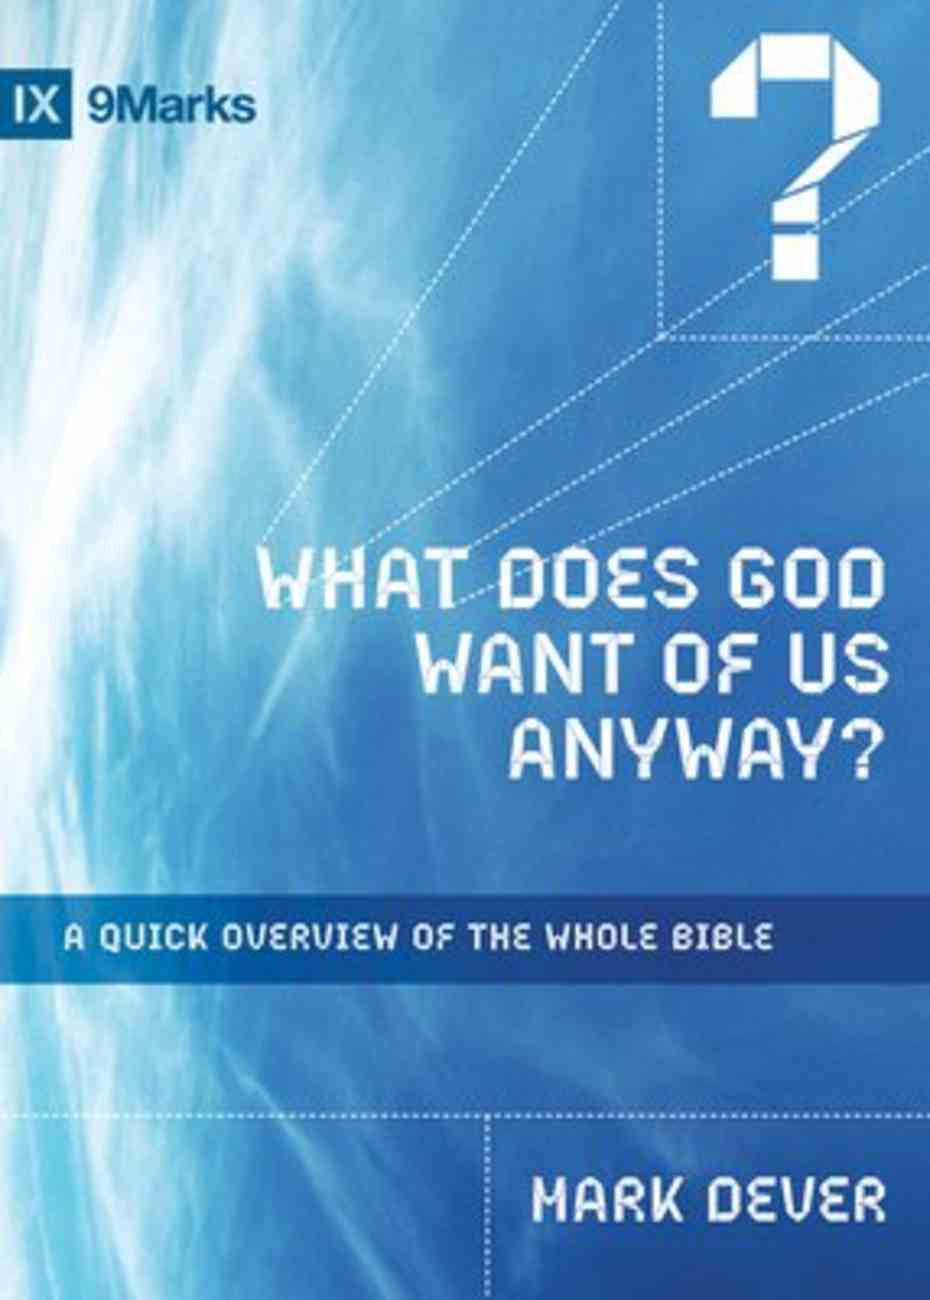 What Does God Want of Us Anyway?: A Quick Overview of the Whole Bible (9marks Series) Paperback